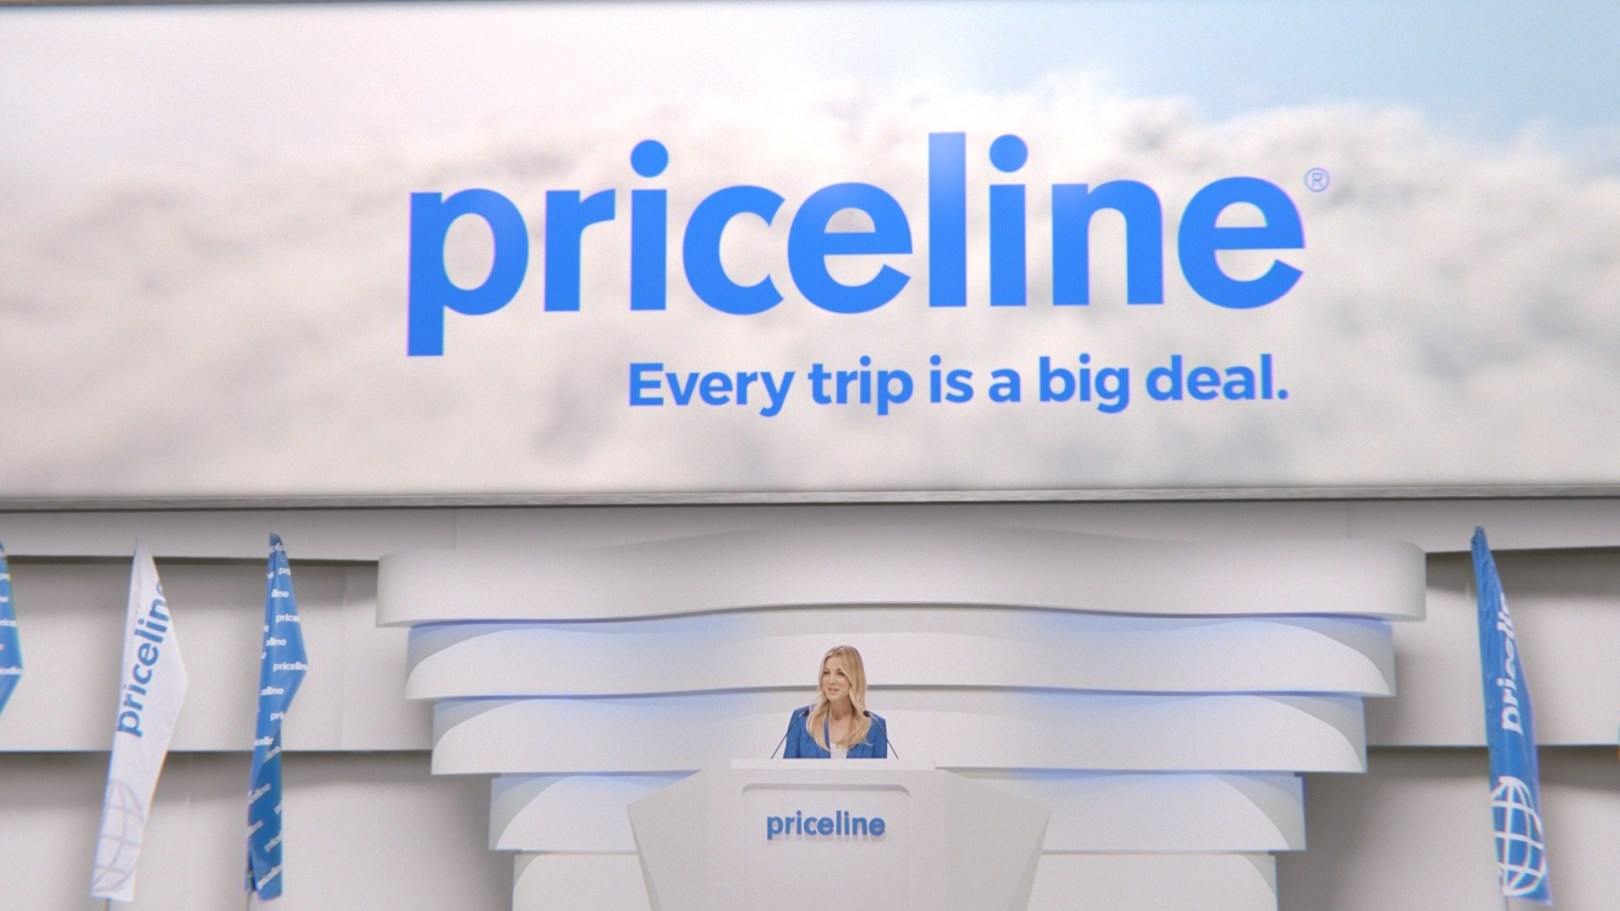 Priceline  Best online stores and products reviews